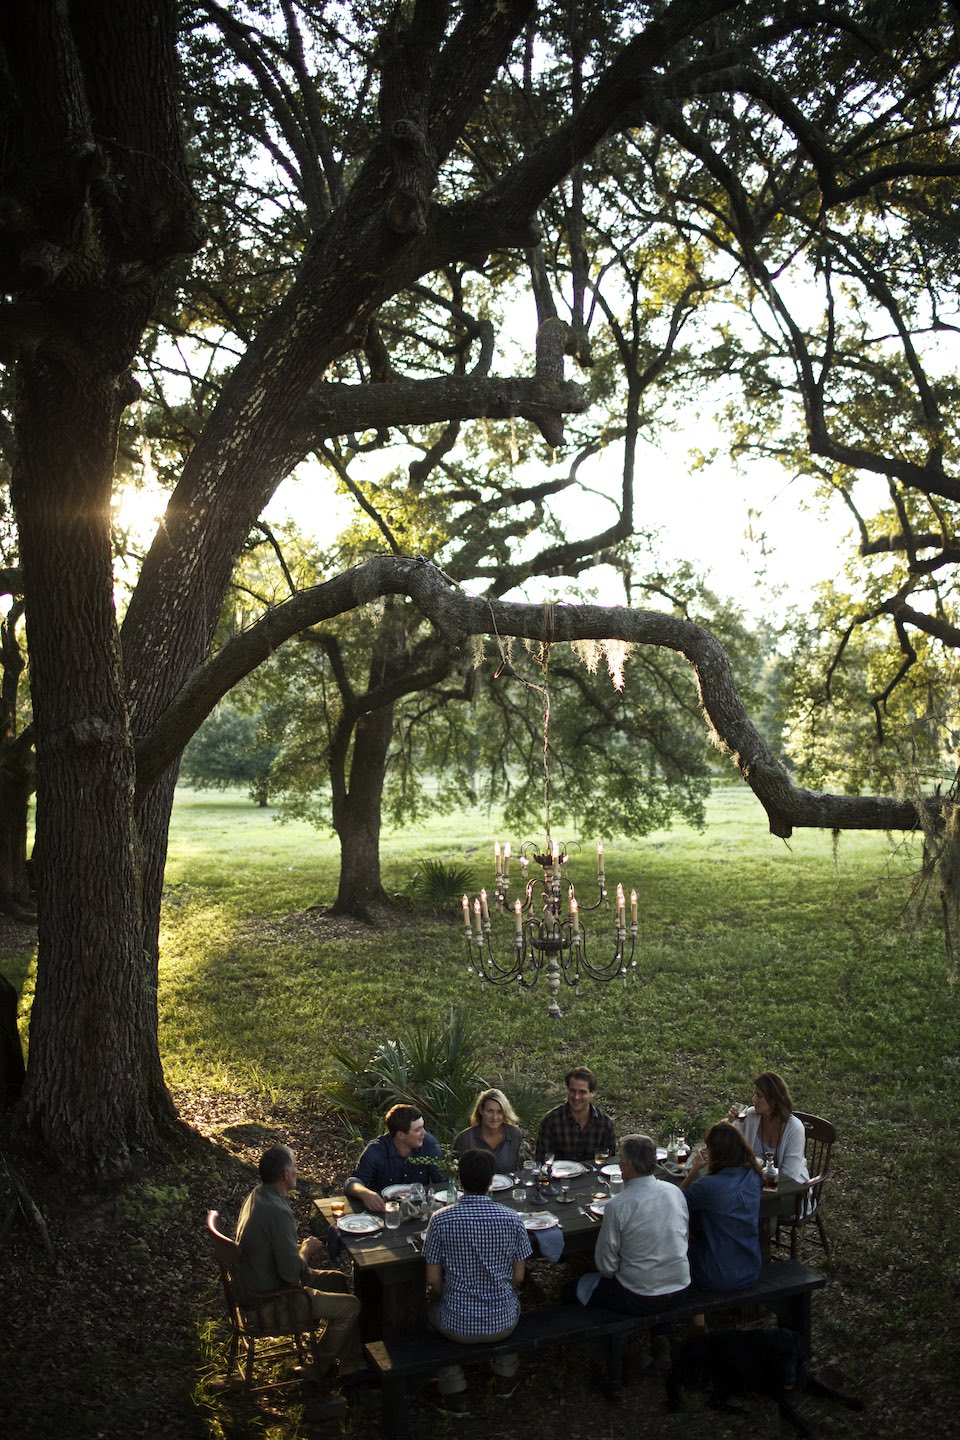 Friends gathered outdoors for dinner, surrounded by live oak trees,